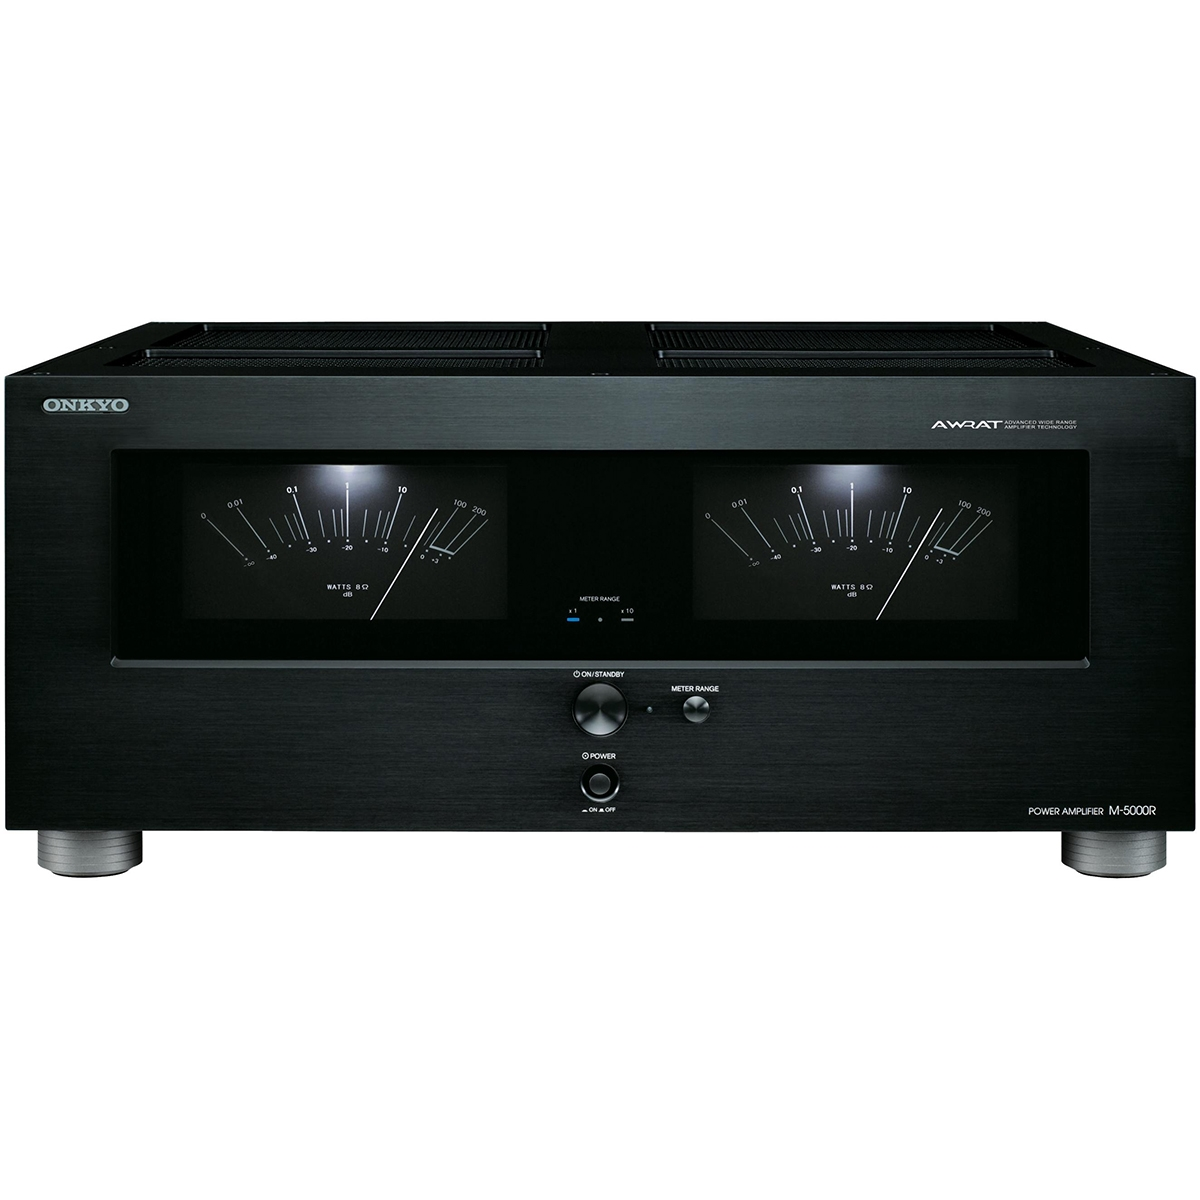 Onkyo Stereo Power Amplifier - M-5000R( 4TH OF JULY SALE STARTS NOW)